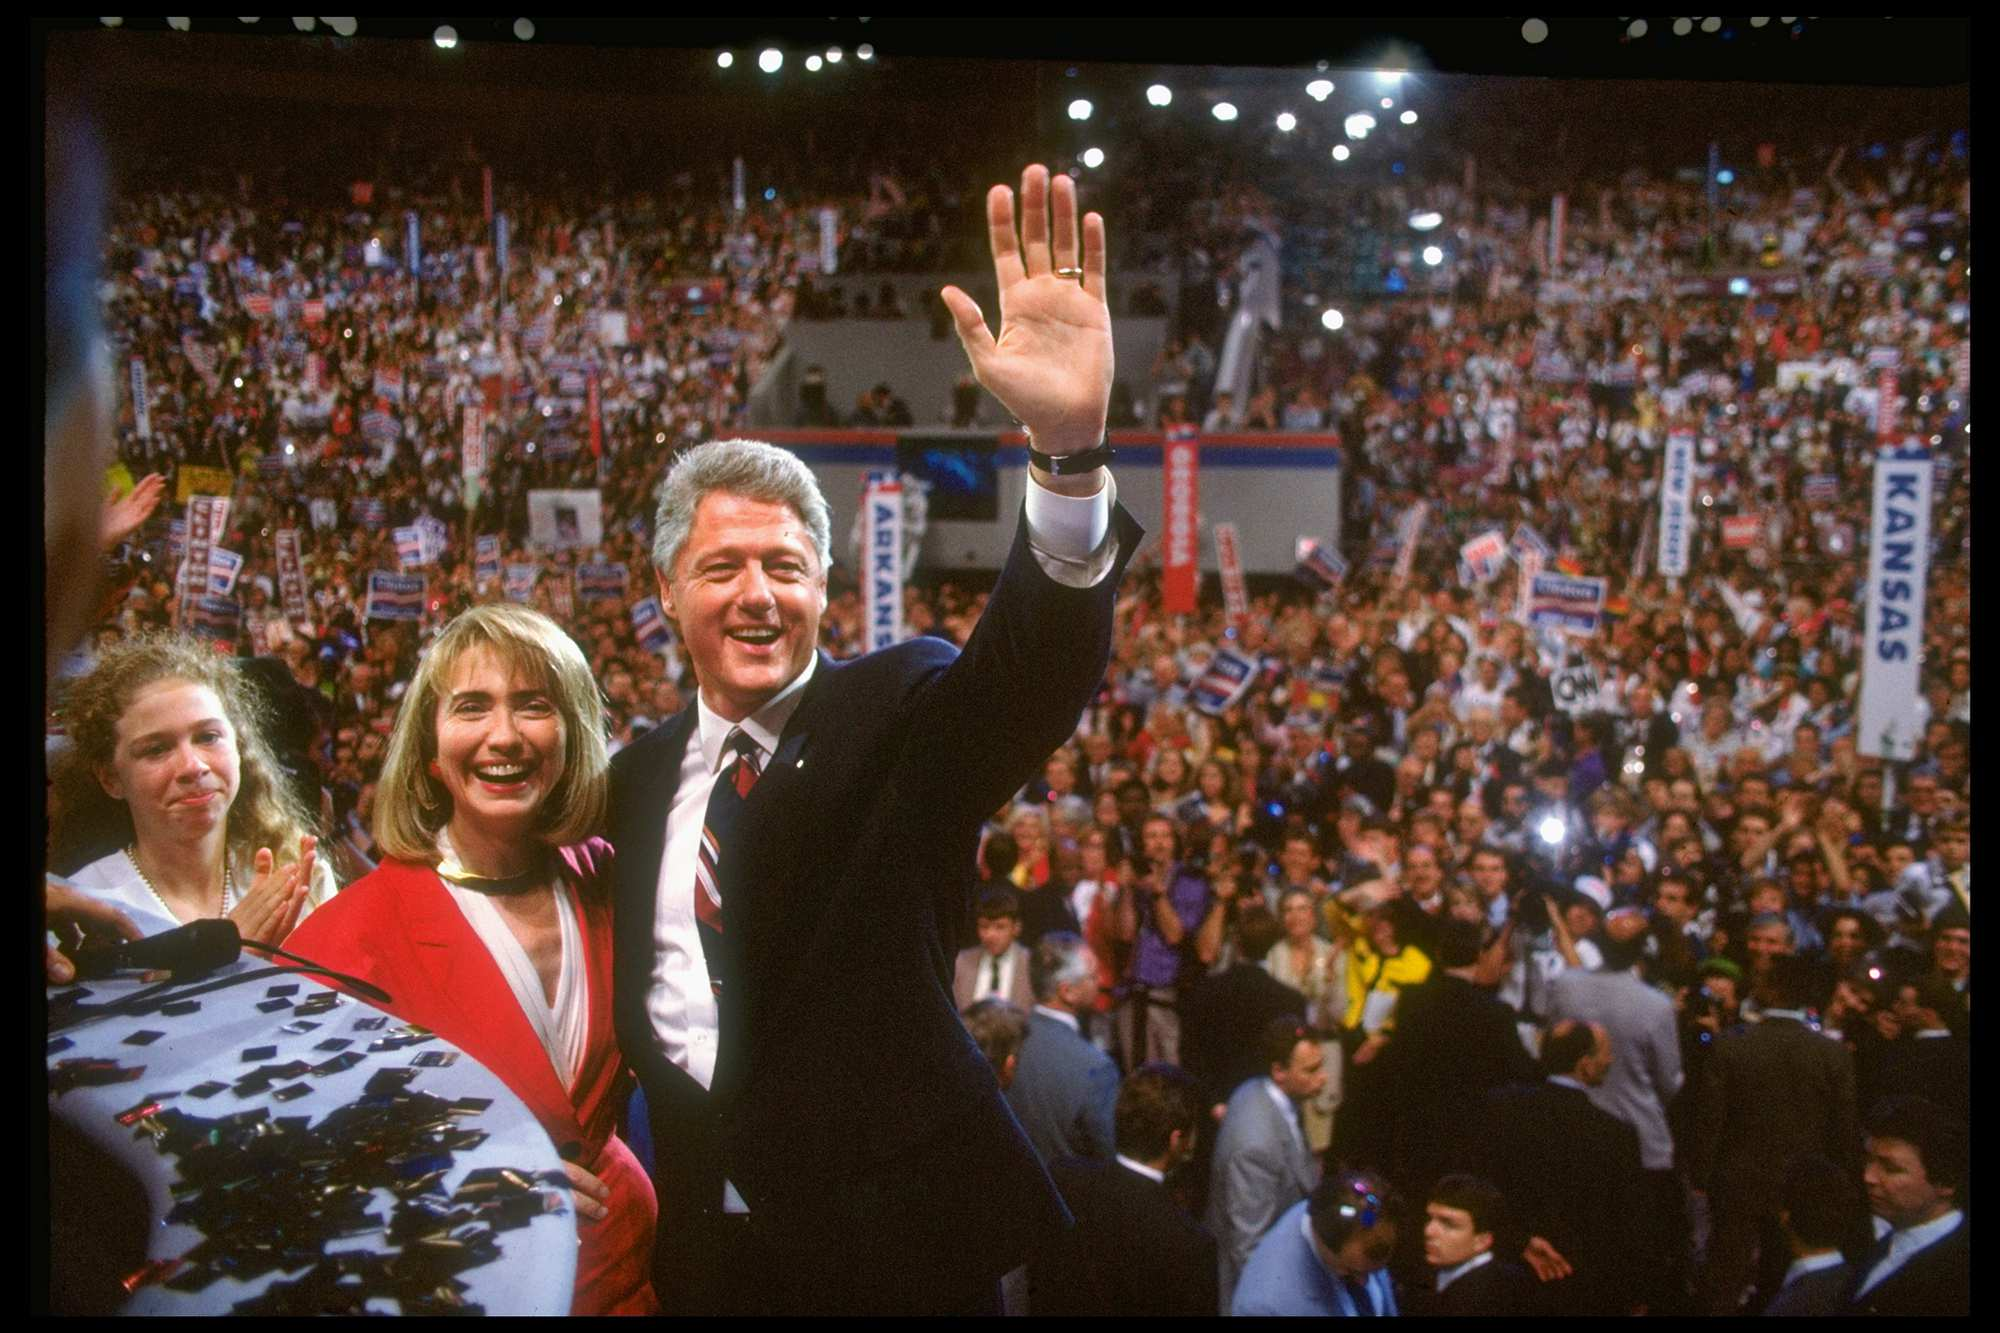 Presidential-nominee Bill Clinton waves to the crowd on the floor of Democratic National Convention with his wife Hillary Rodham Clinton and daughter Chelsea by his side. | <span>Steve Liss/The LIFE Images Collection/Getty Images</span>